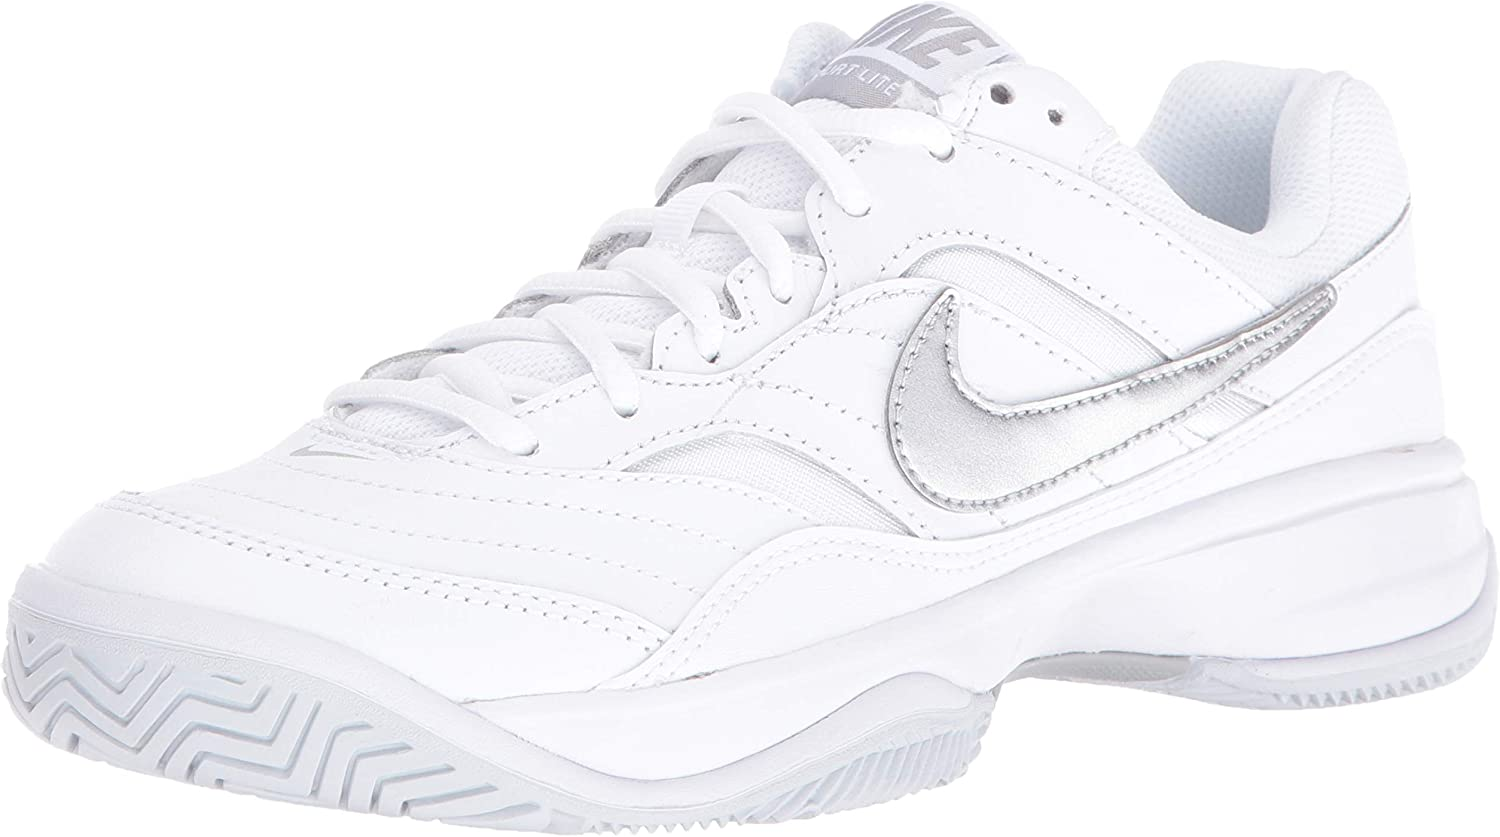 pictures of nike tennis shoes